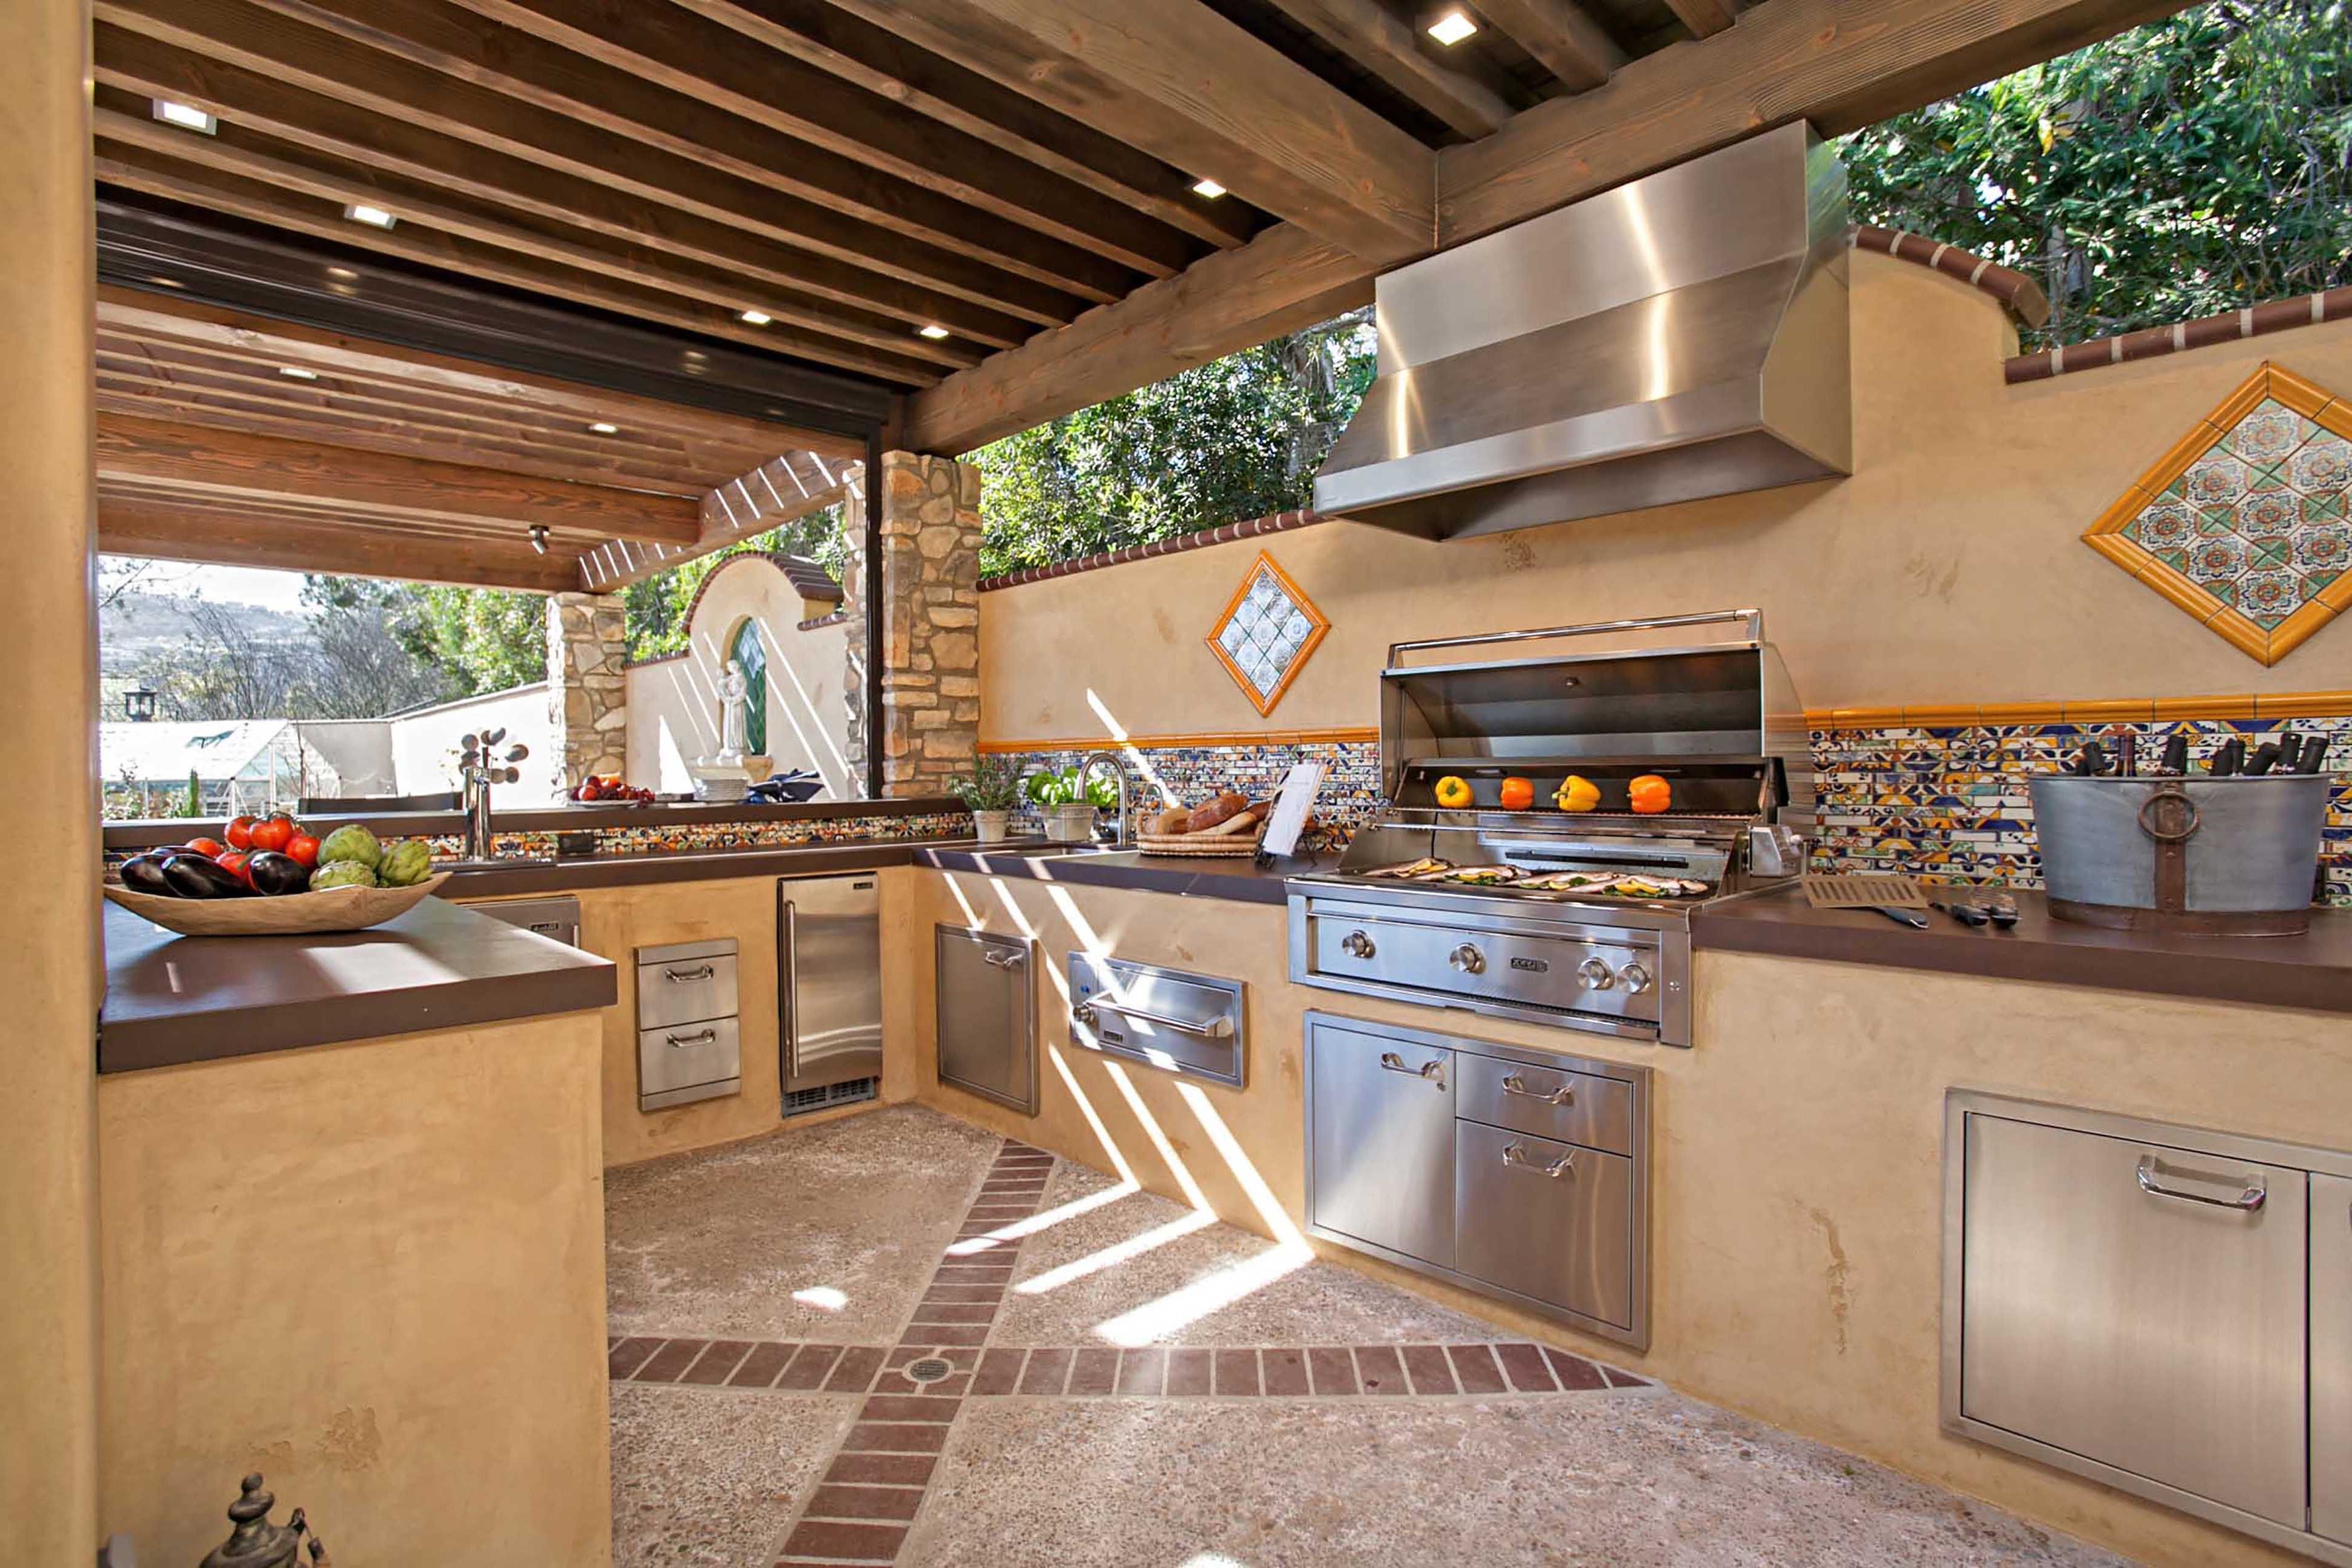 mediterranean outdoor kitchen with stainless grill cocinas palapas asador on outdoor kitchen id=33219